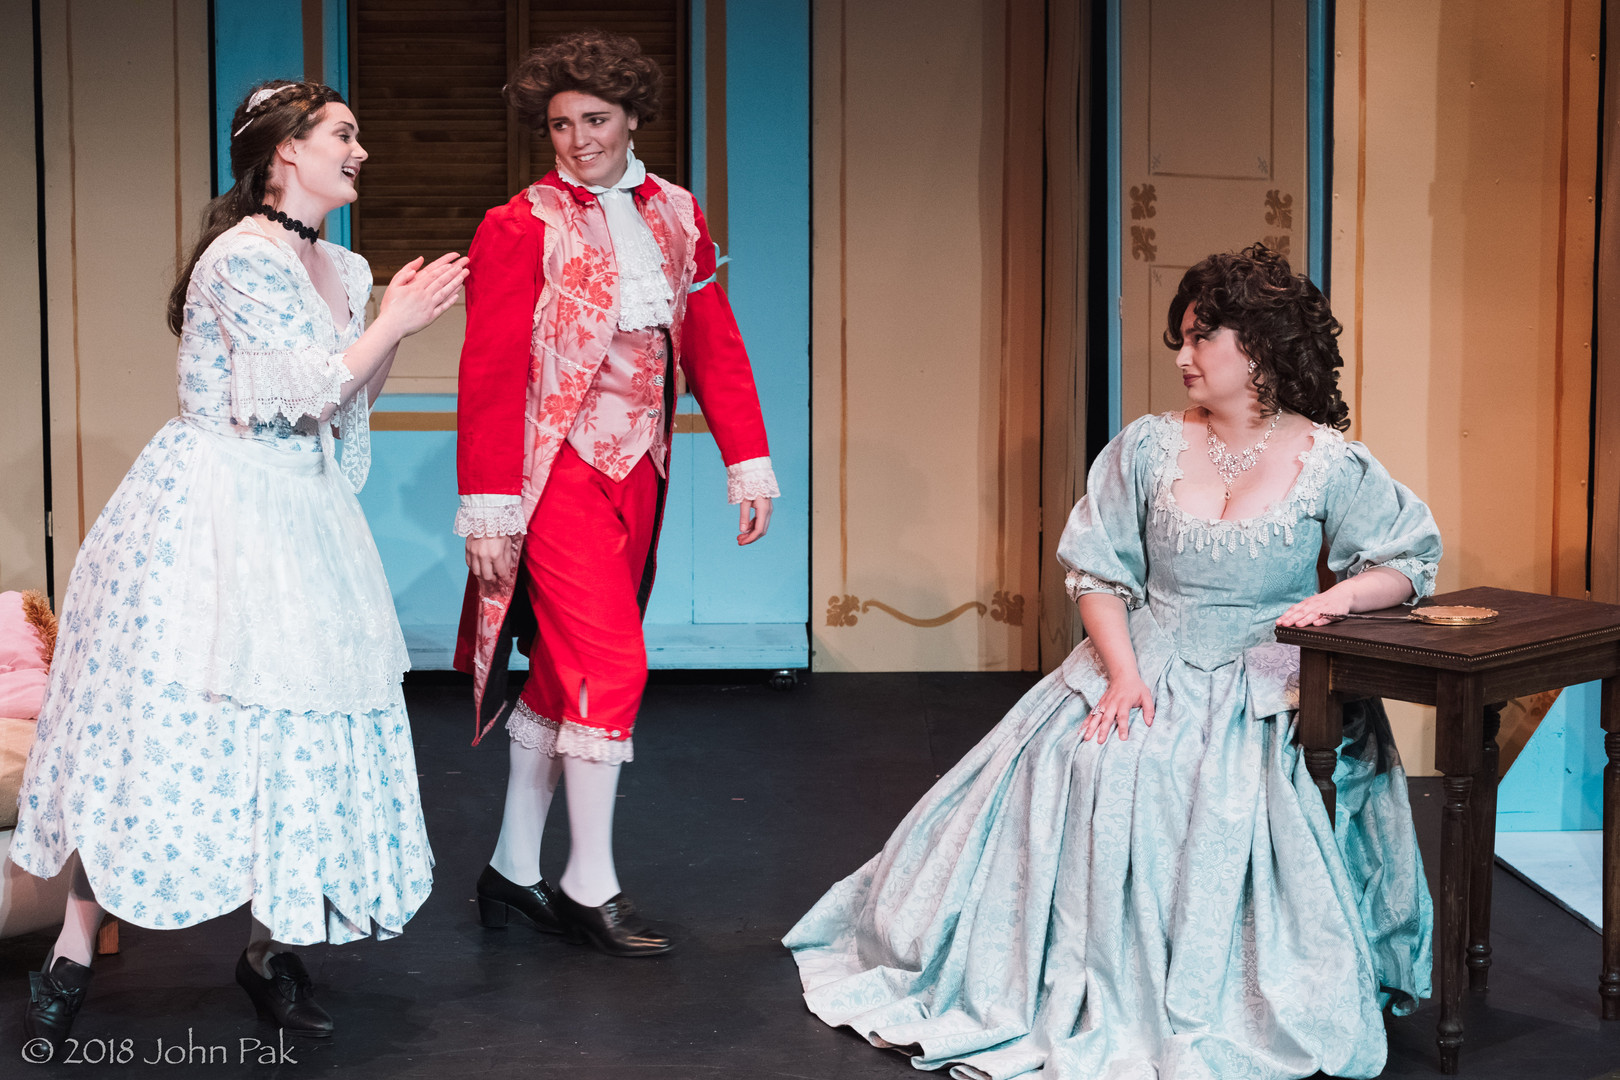 Katrina Deininger, Sandra Sharis and Megan Uhrinak as Susanna, Cherubino and the Countess